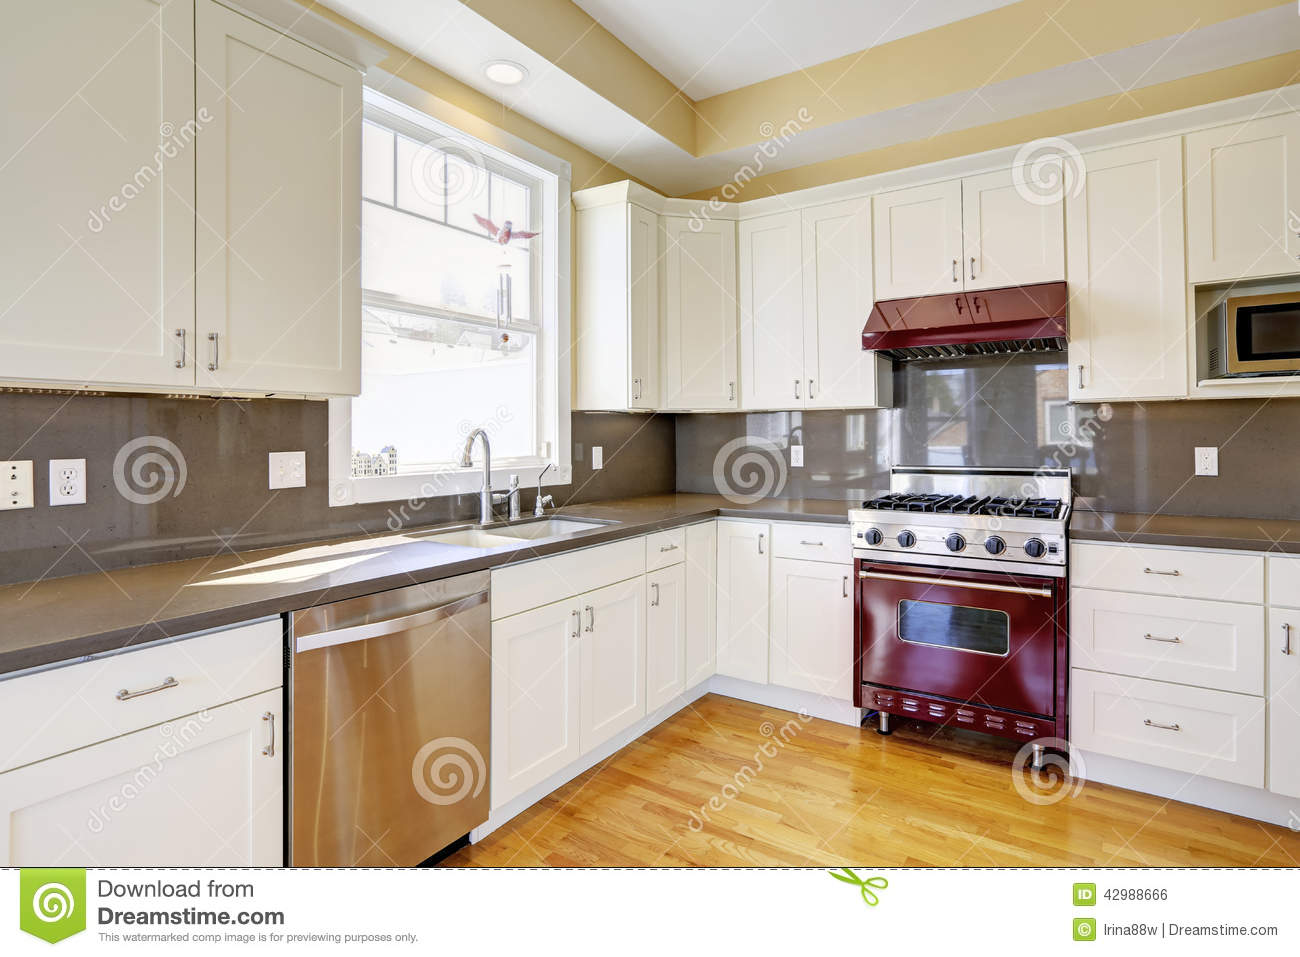 White kitchen with burgundy stove and grey counter tops for Burgundy kitchen cabinets